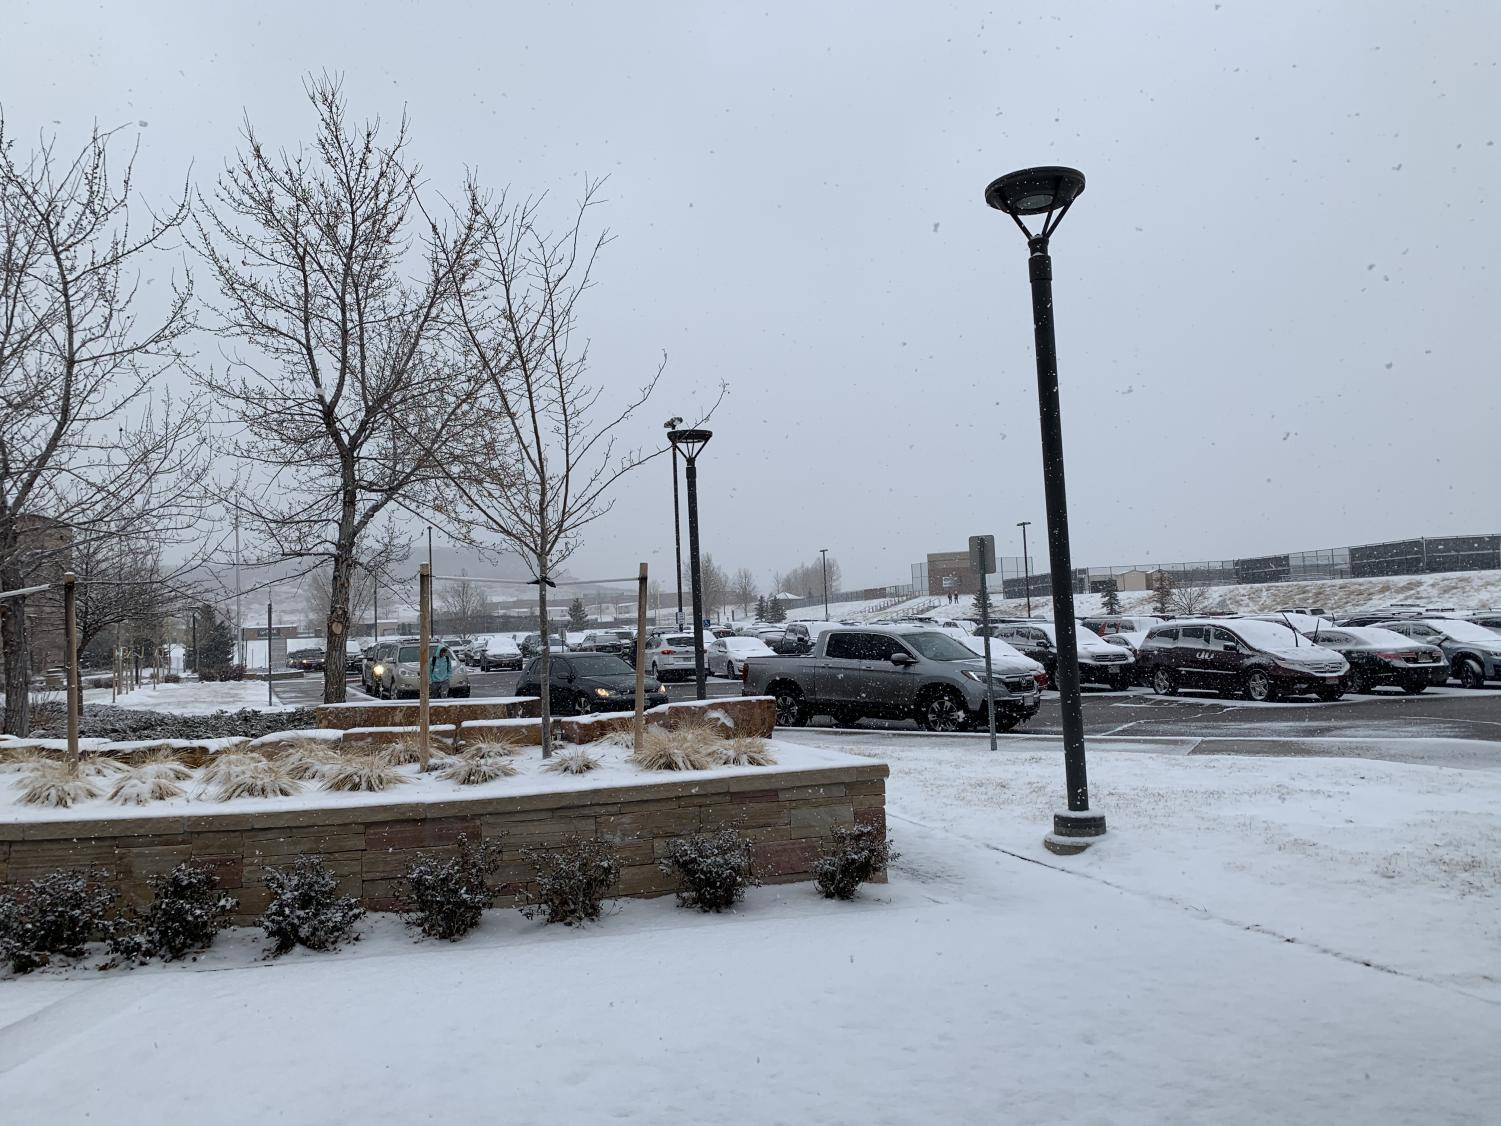 Snow covers the upper parking lot at 2:48 pm Feb. 3. All after school activities were cancelled due to predicted, dangerous road closures.